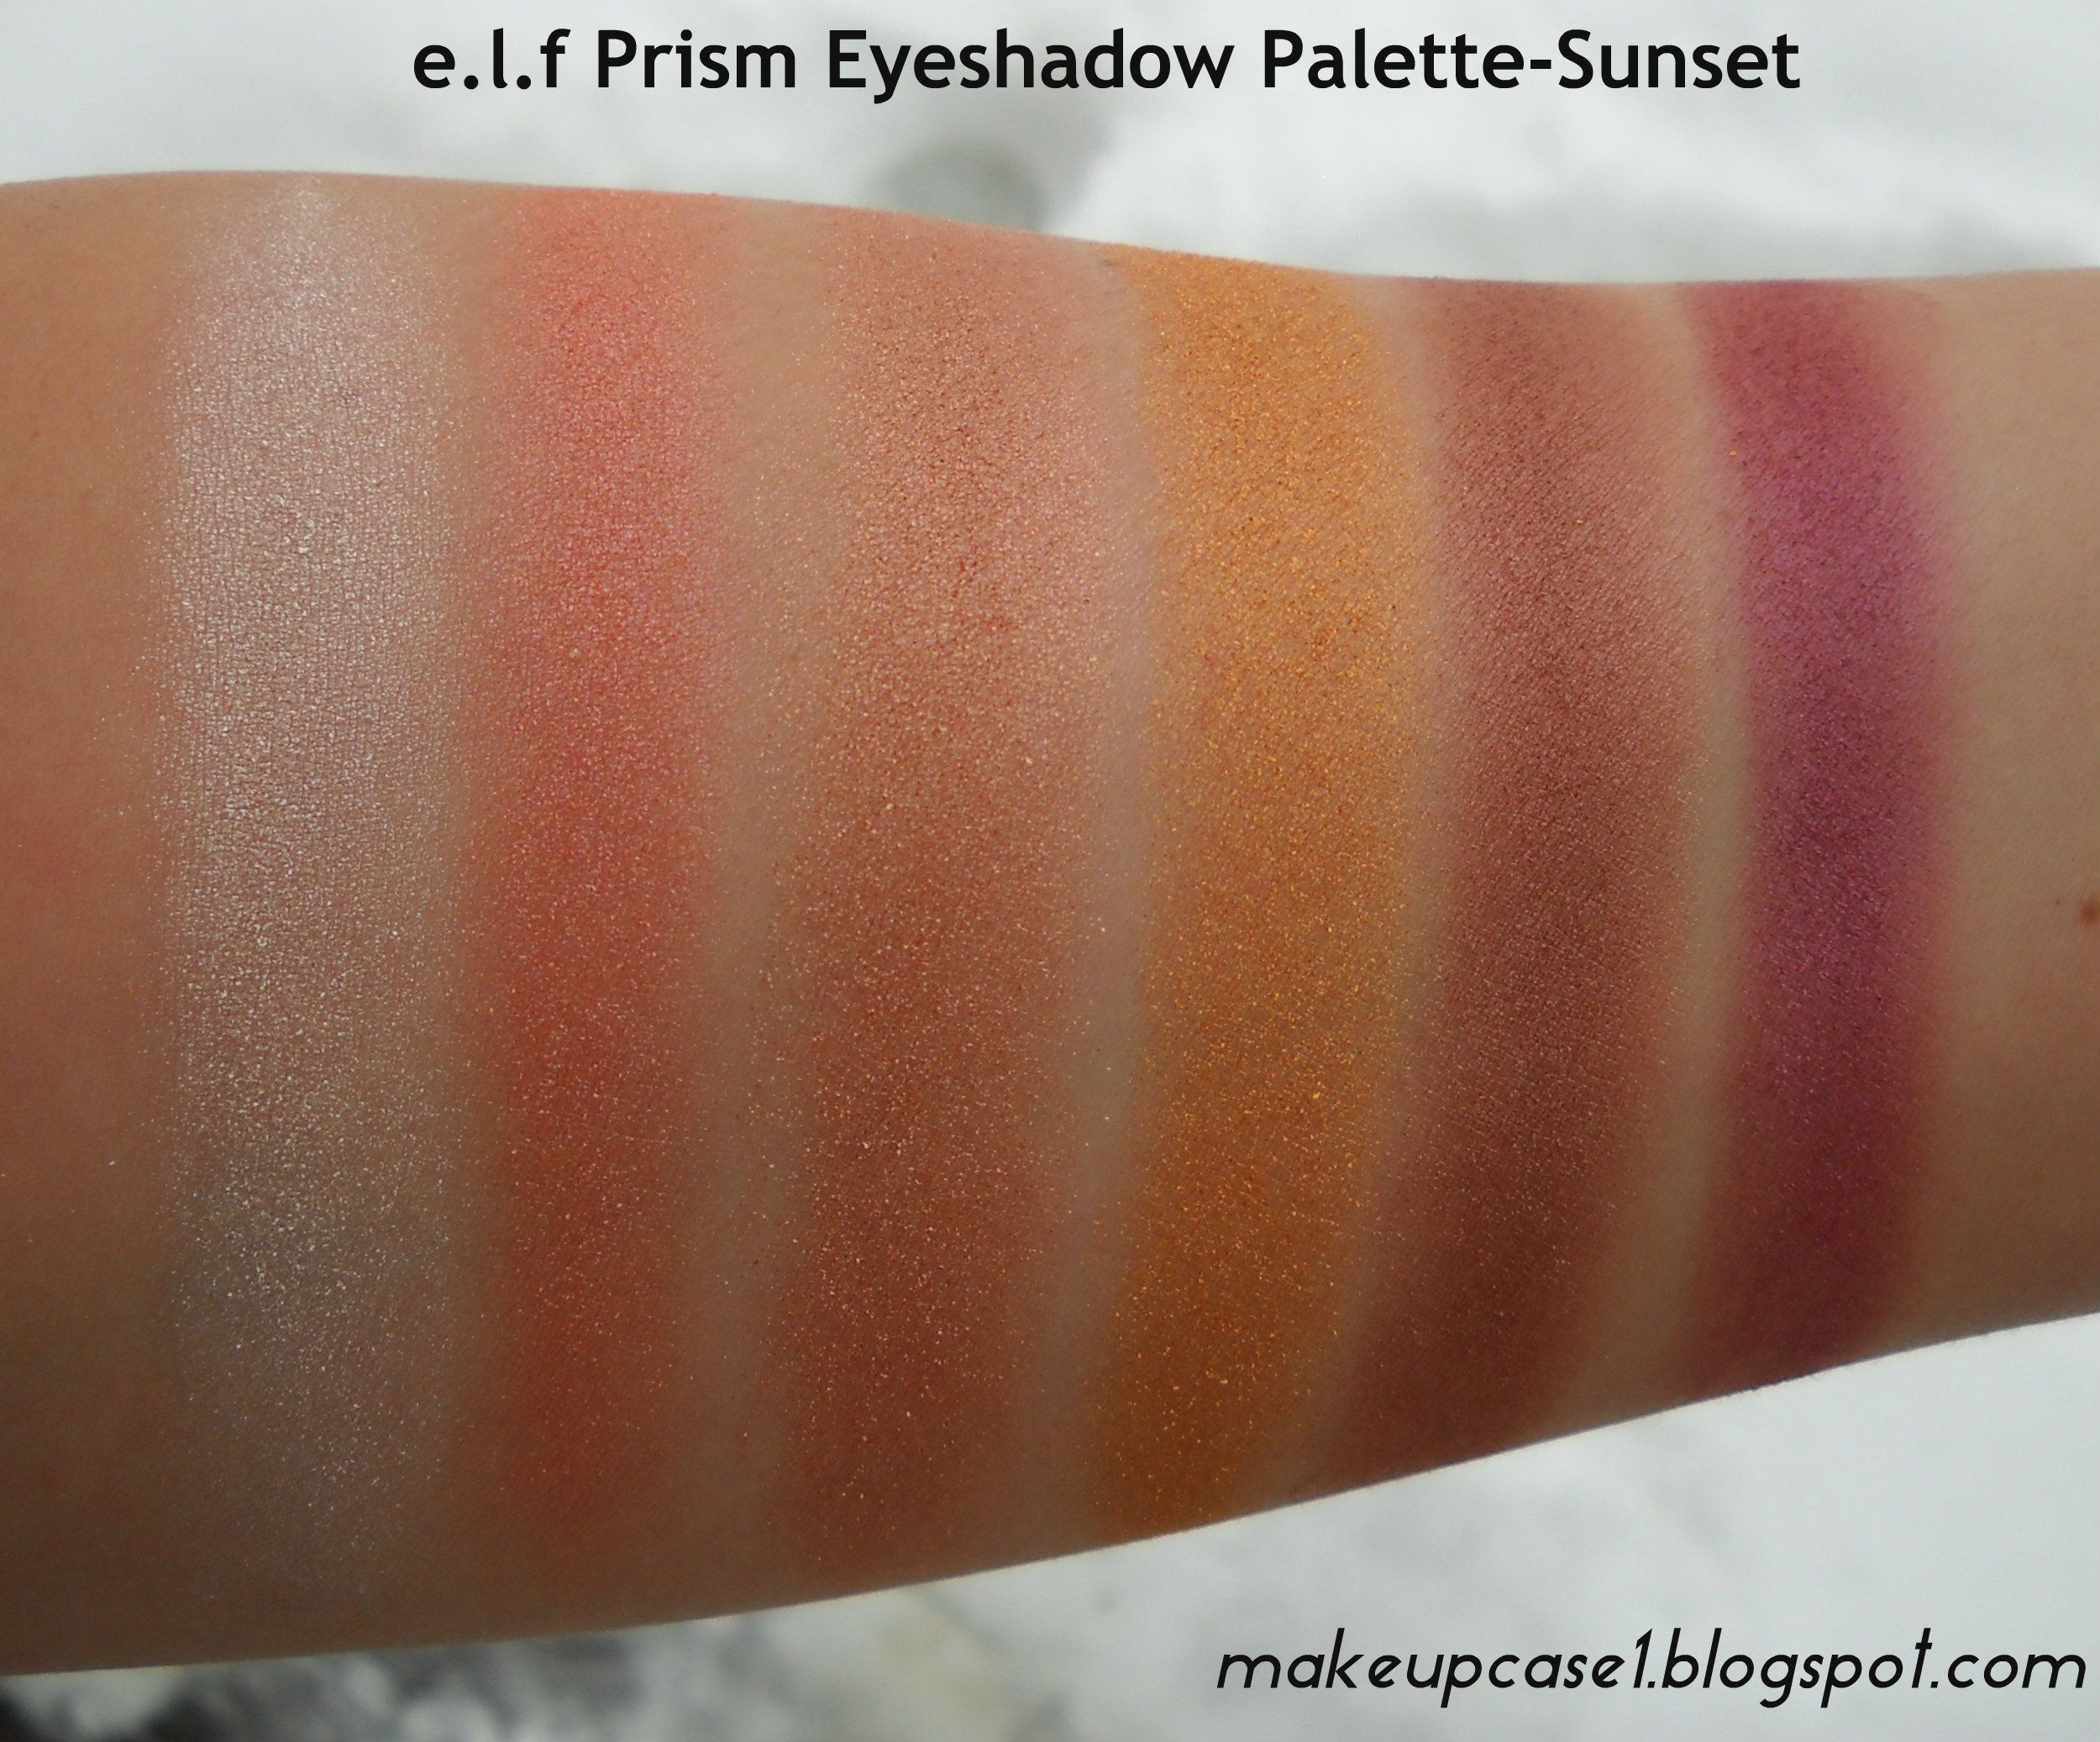 Prism Eyeshadow Palette - Naked by e.l.f. #22